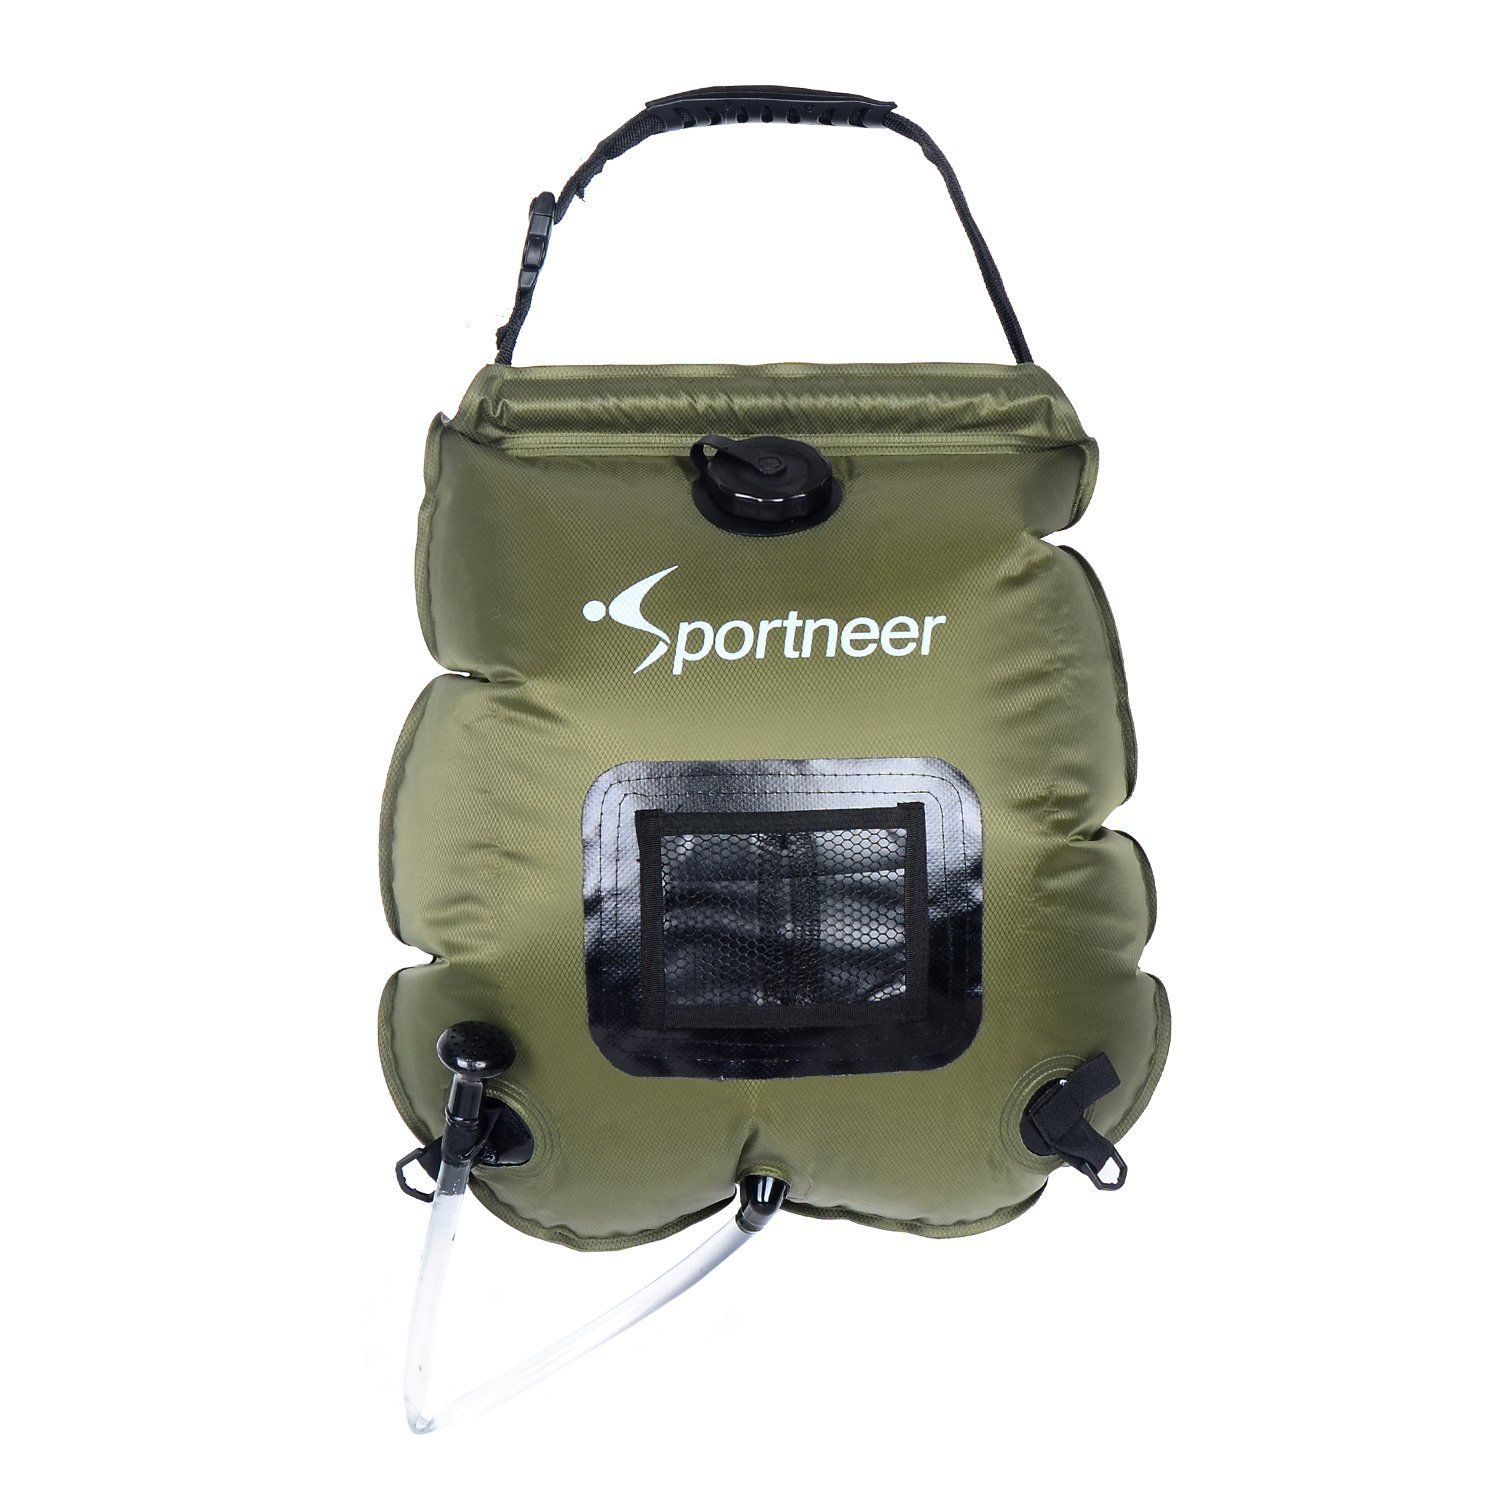 Sportneer Solar Camping Shower Bag 5 Gallon With Removable Hose And On Off Switch Able Head Sports Outdoors